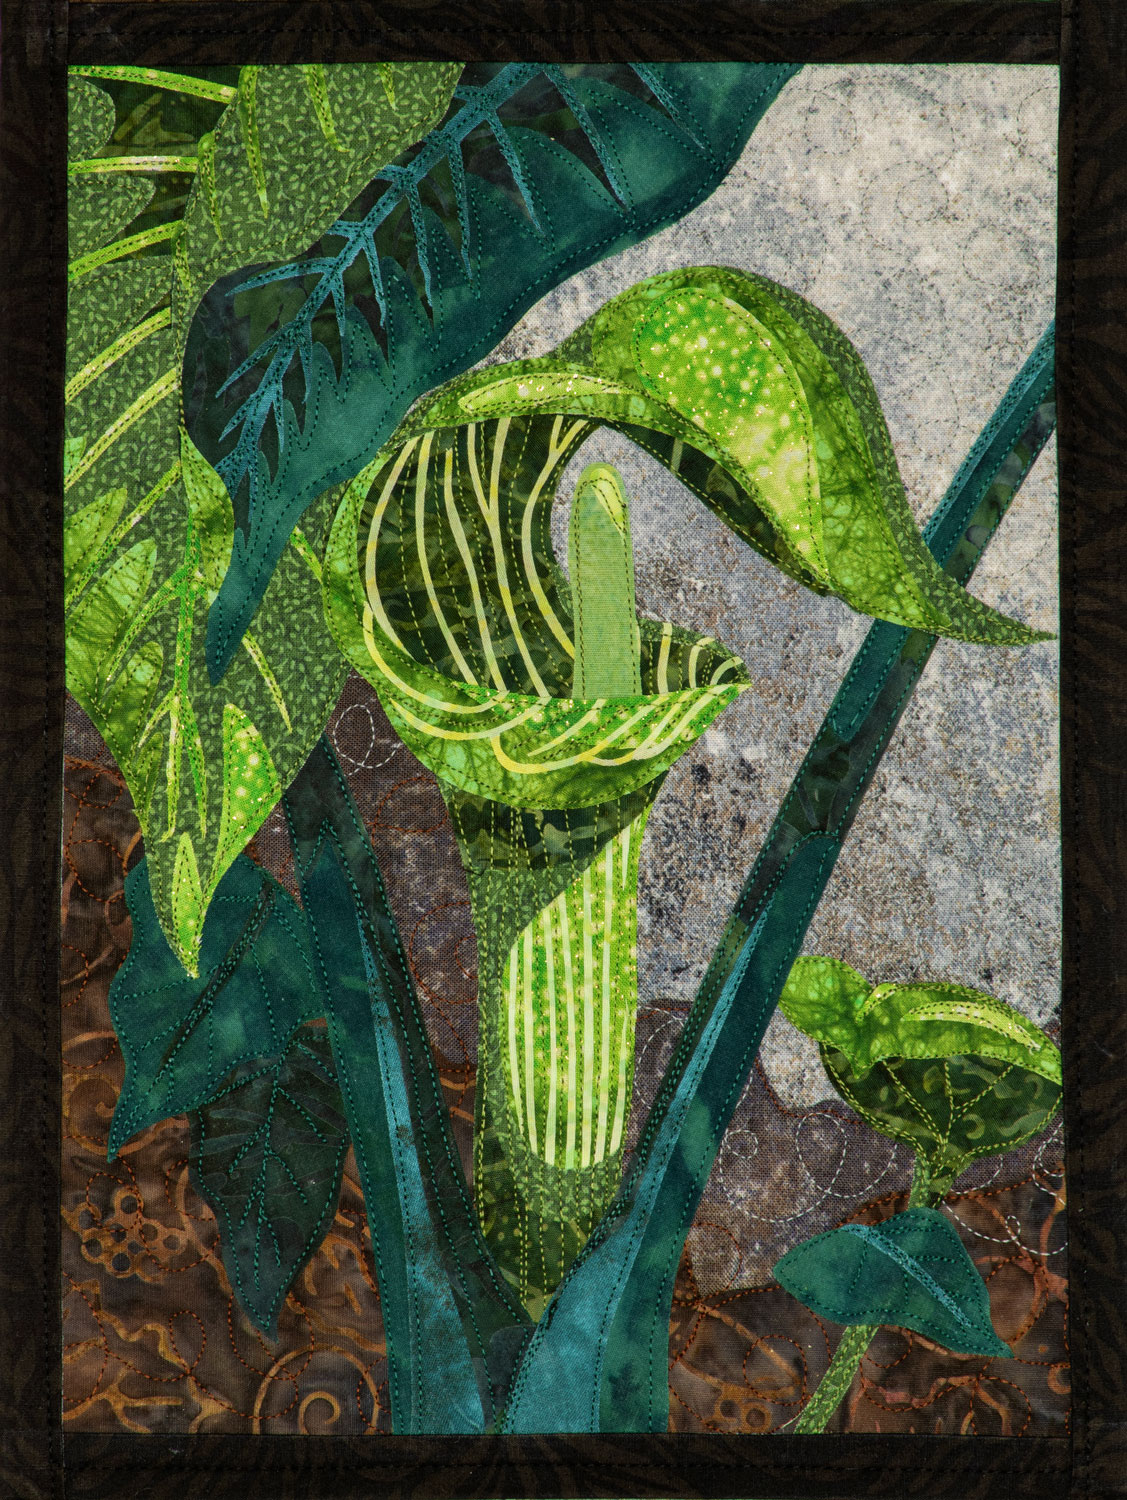 Jack-in-the-Pulpit Wall Hanging, Complete